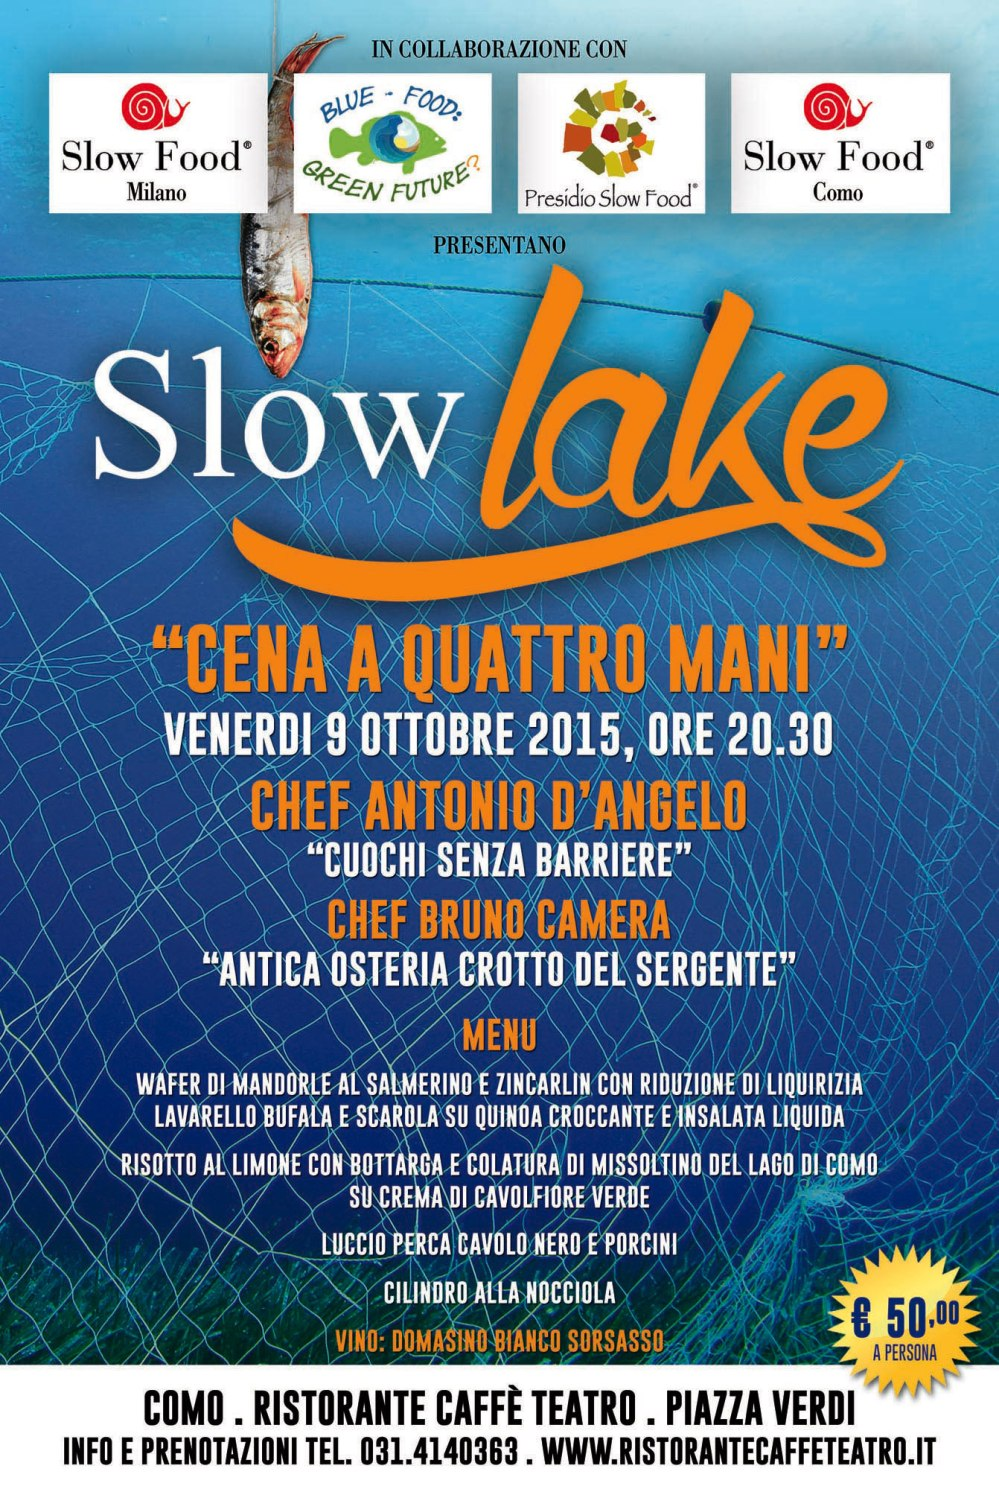 Invito-slow-lake_OK.jpg